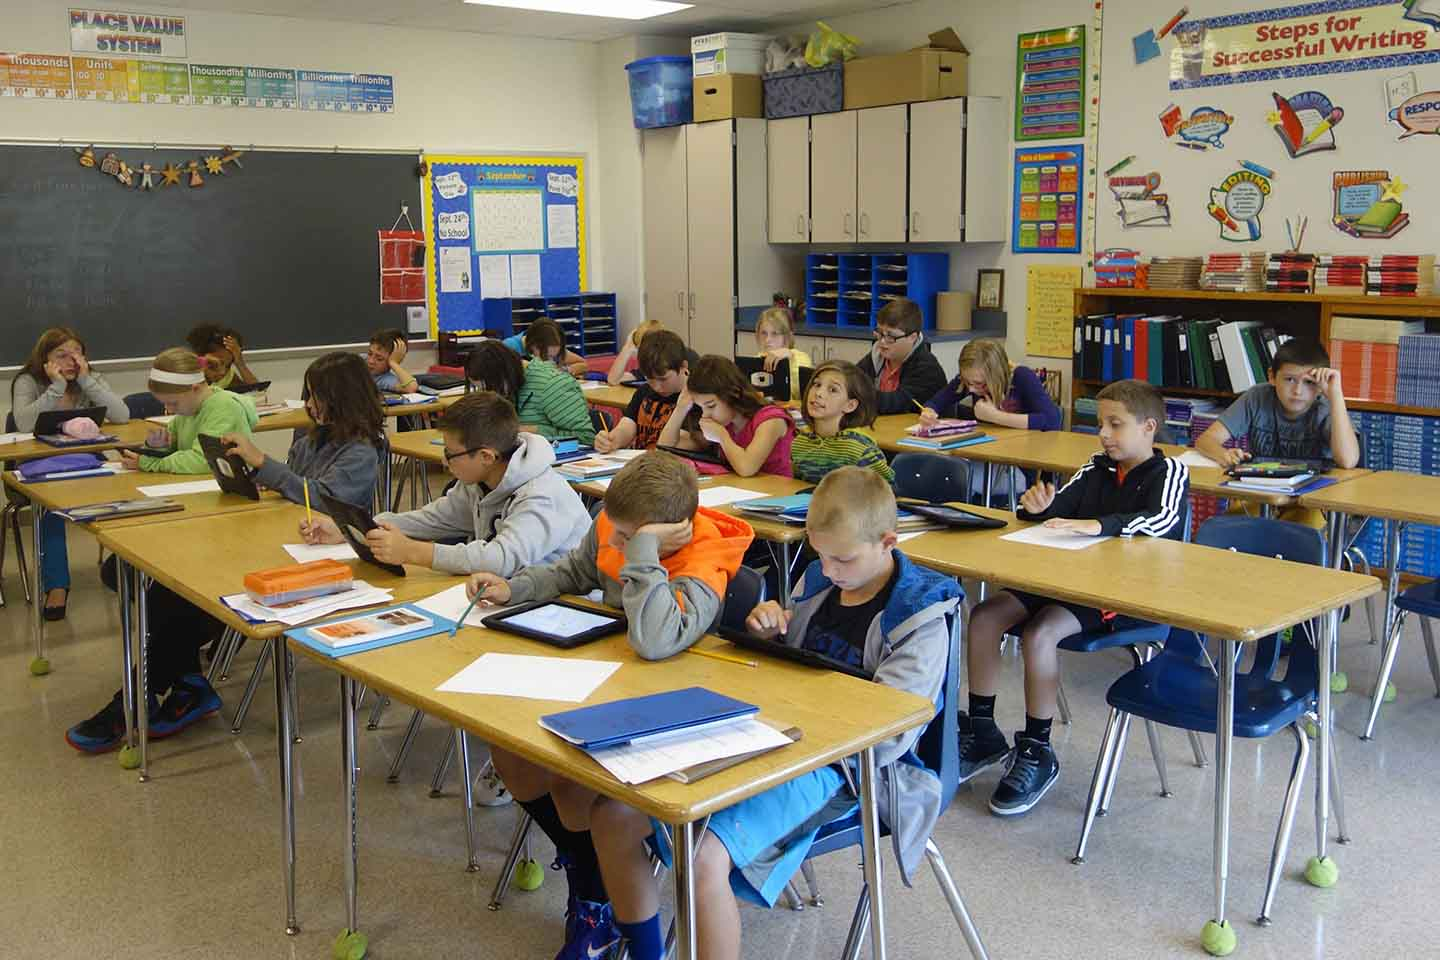 Middle School Classroom, Wellsville, New York